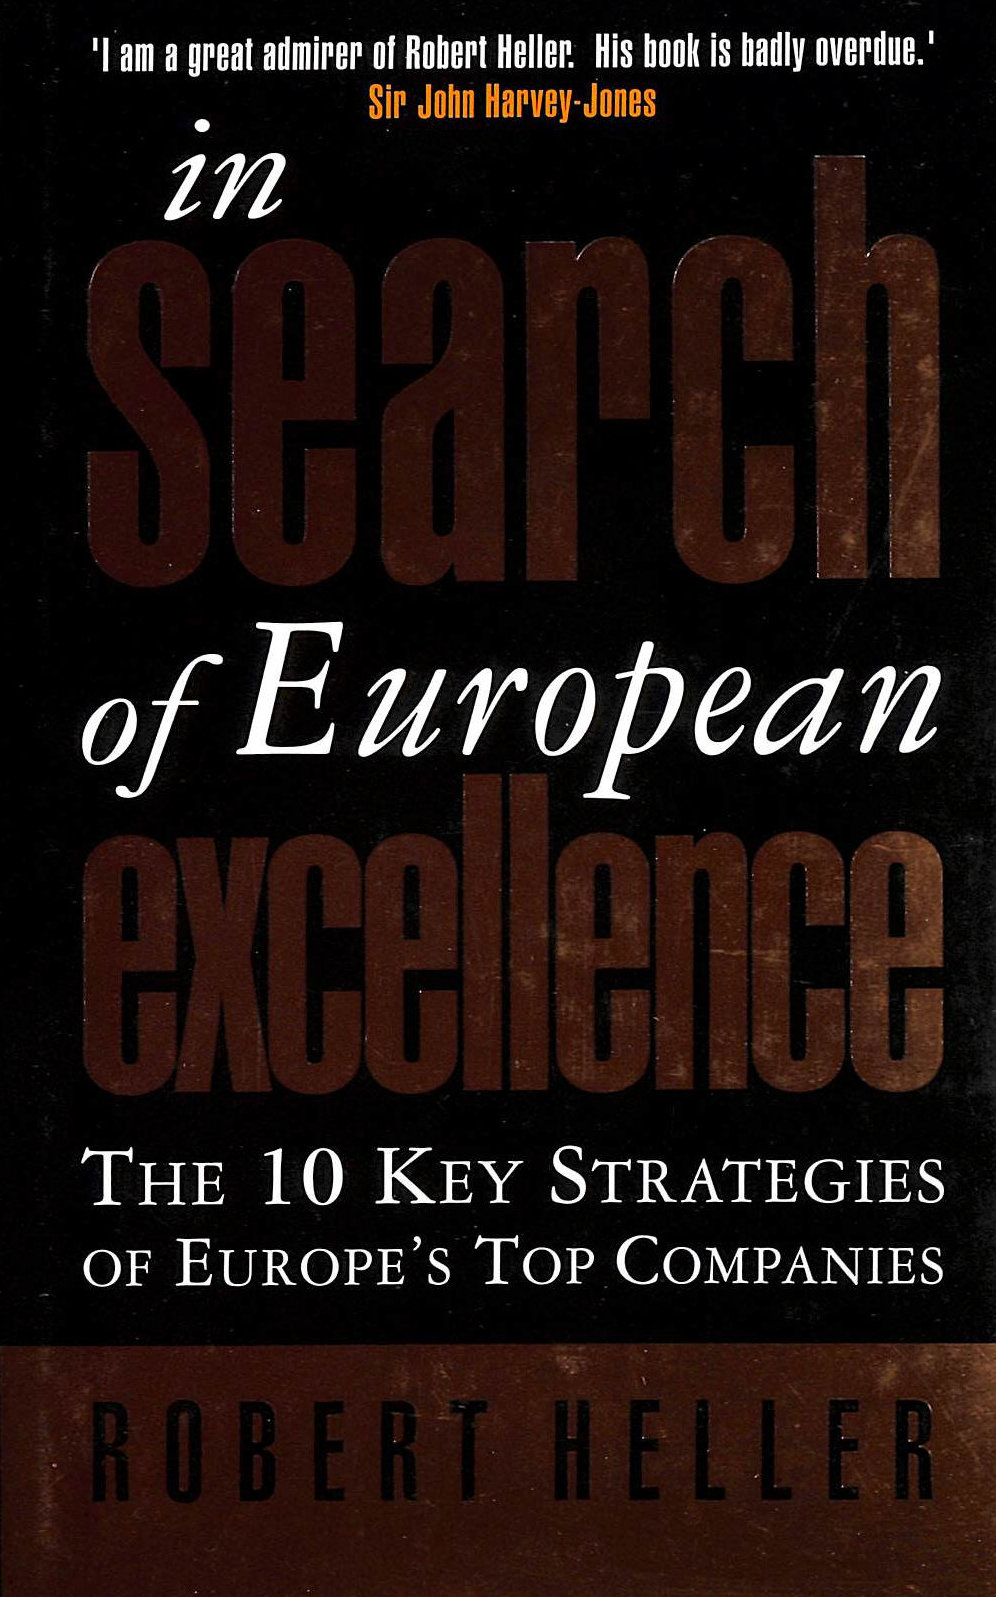 Image for In Search of European Excellence: The 10 Key Strategies of Europe's Top Companies